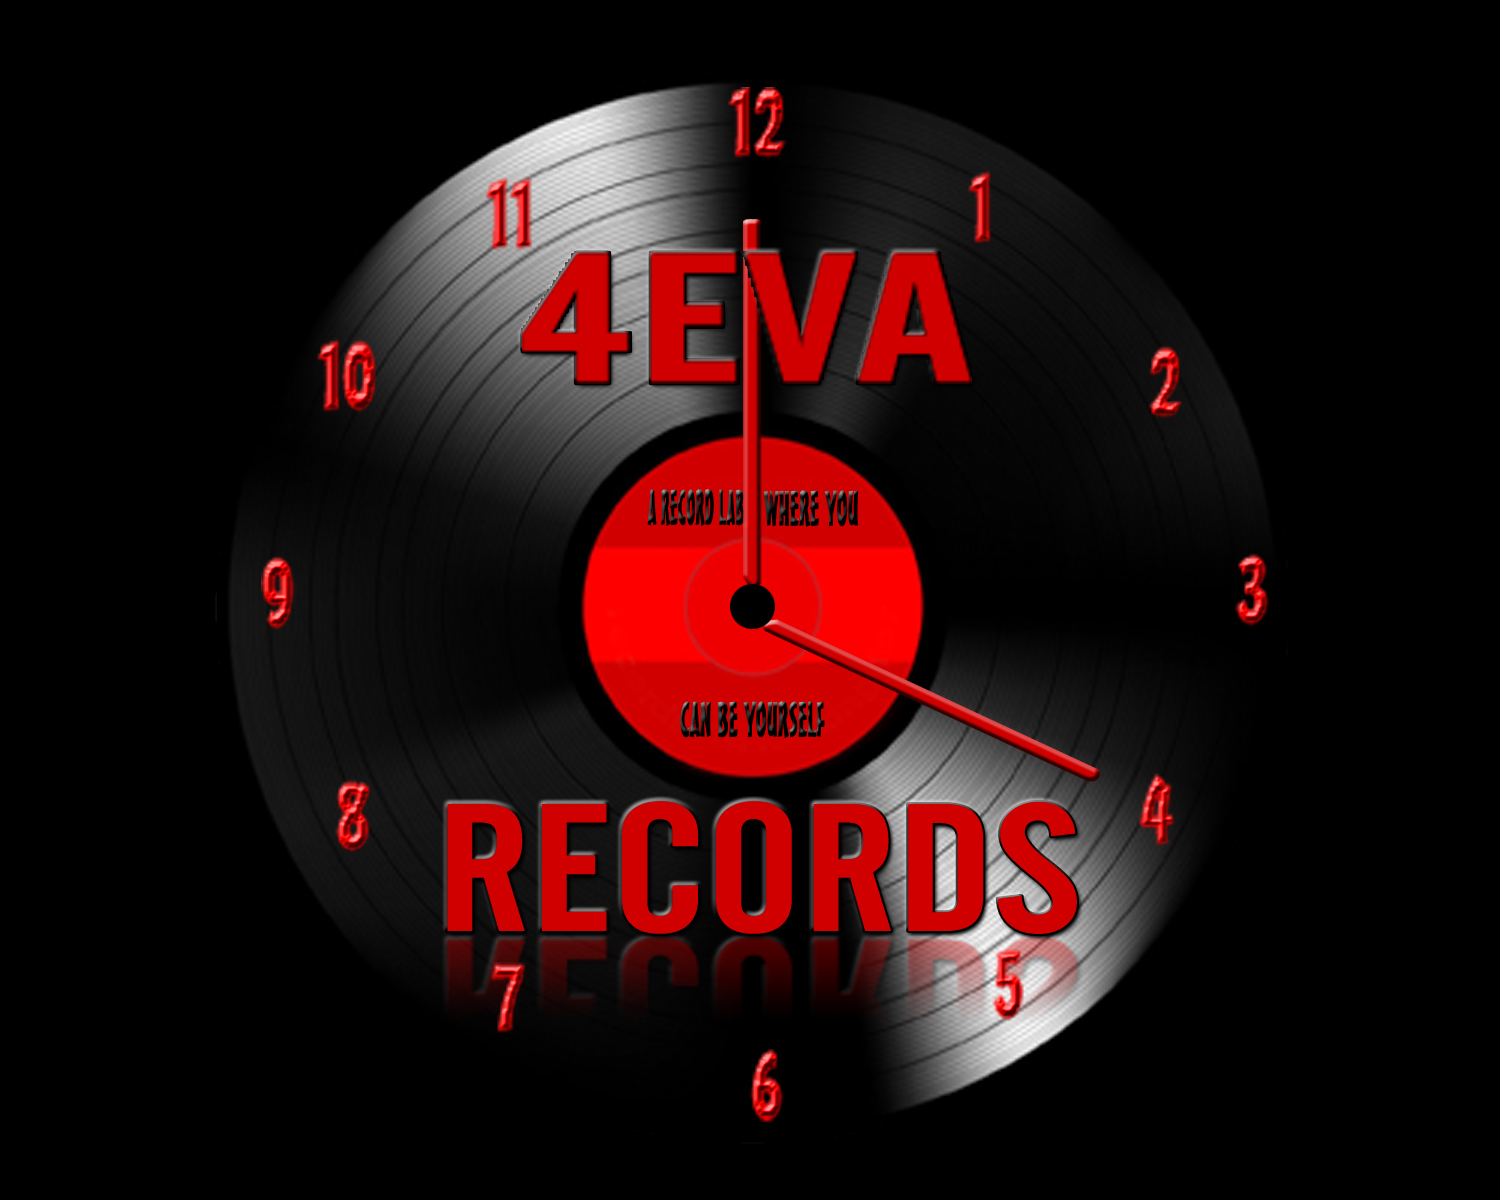 4EVA RECORDS